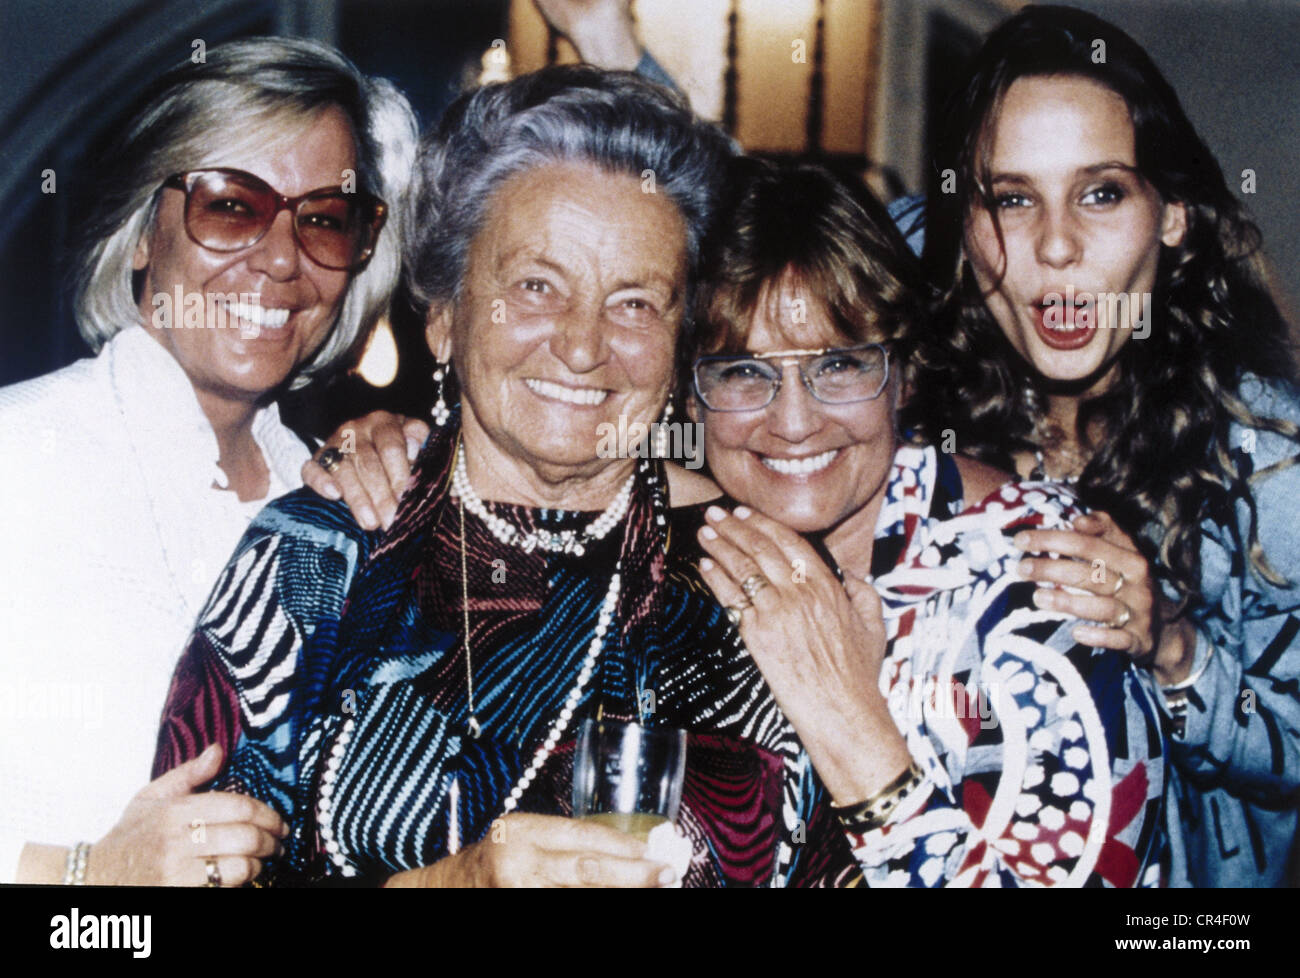 Schell, Maria, 15.1.1926 - 26.4.2005, German actress, group picture, with her sister Immy Schell, her mother Margarethe - Stock Image